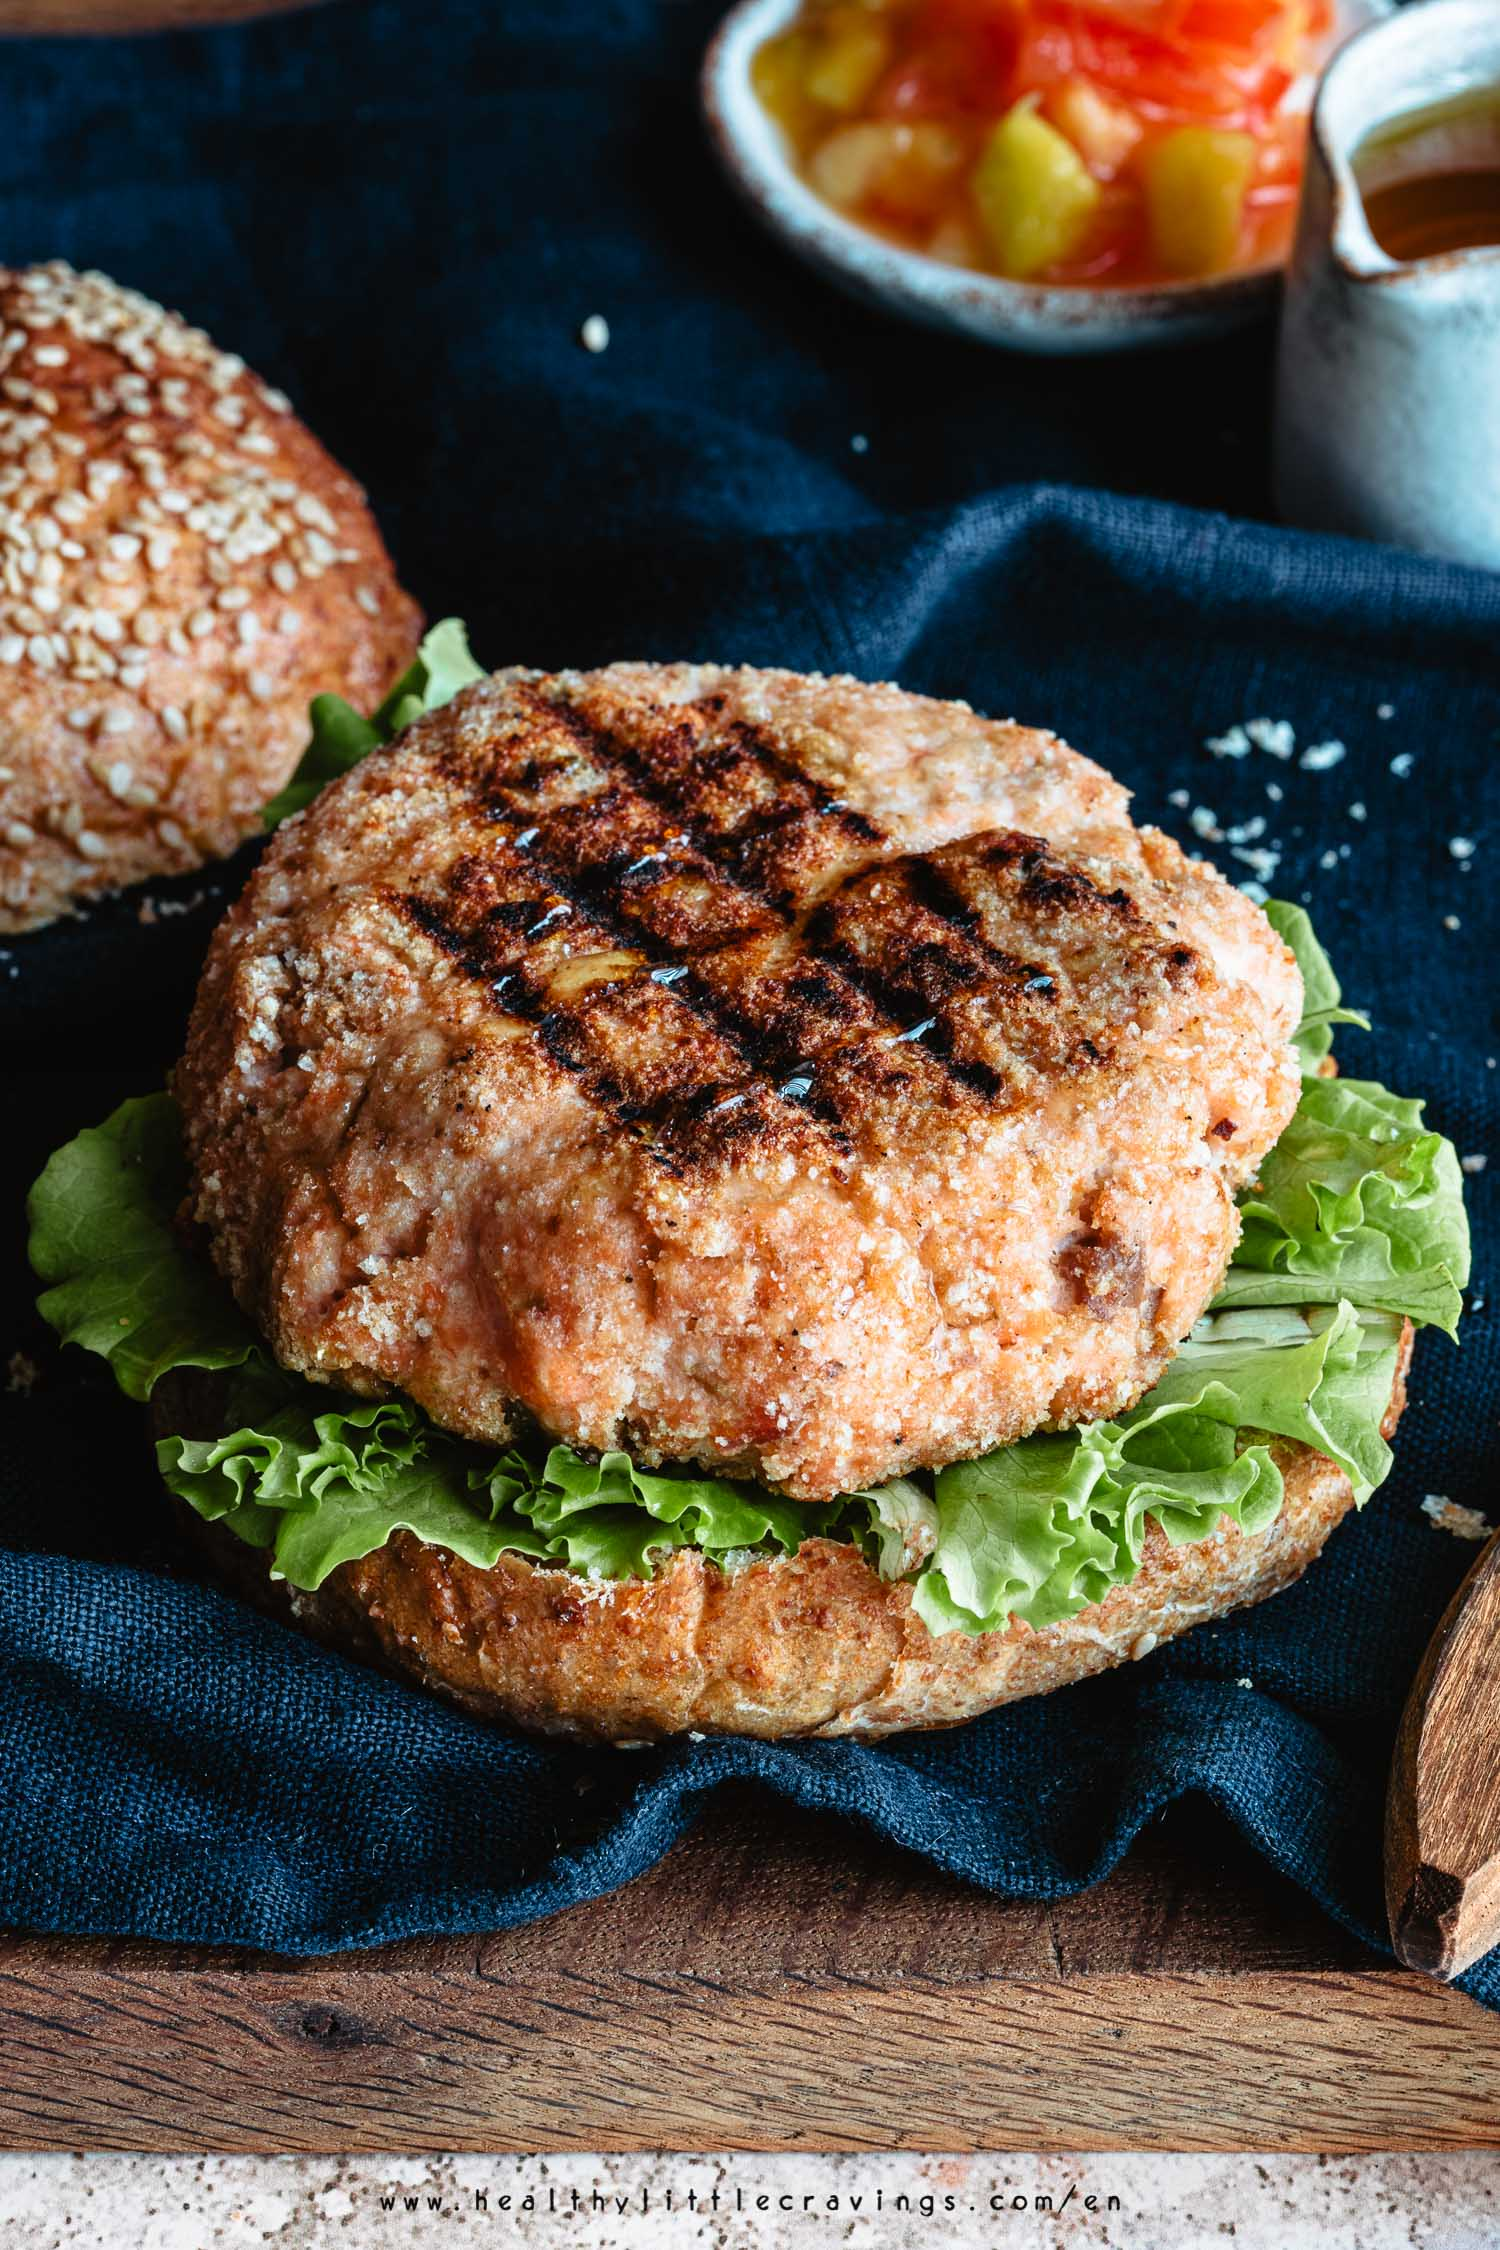 Grilled salmon burgers on a whole bun